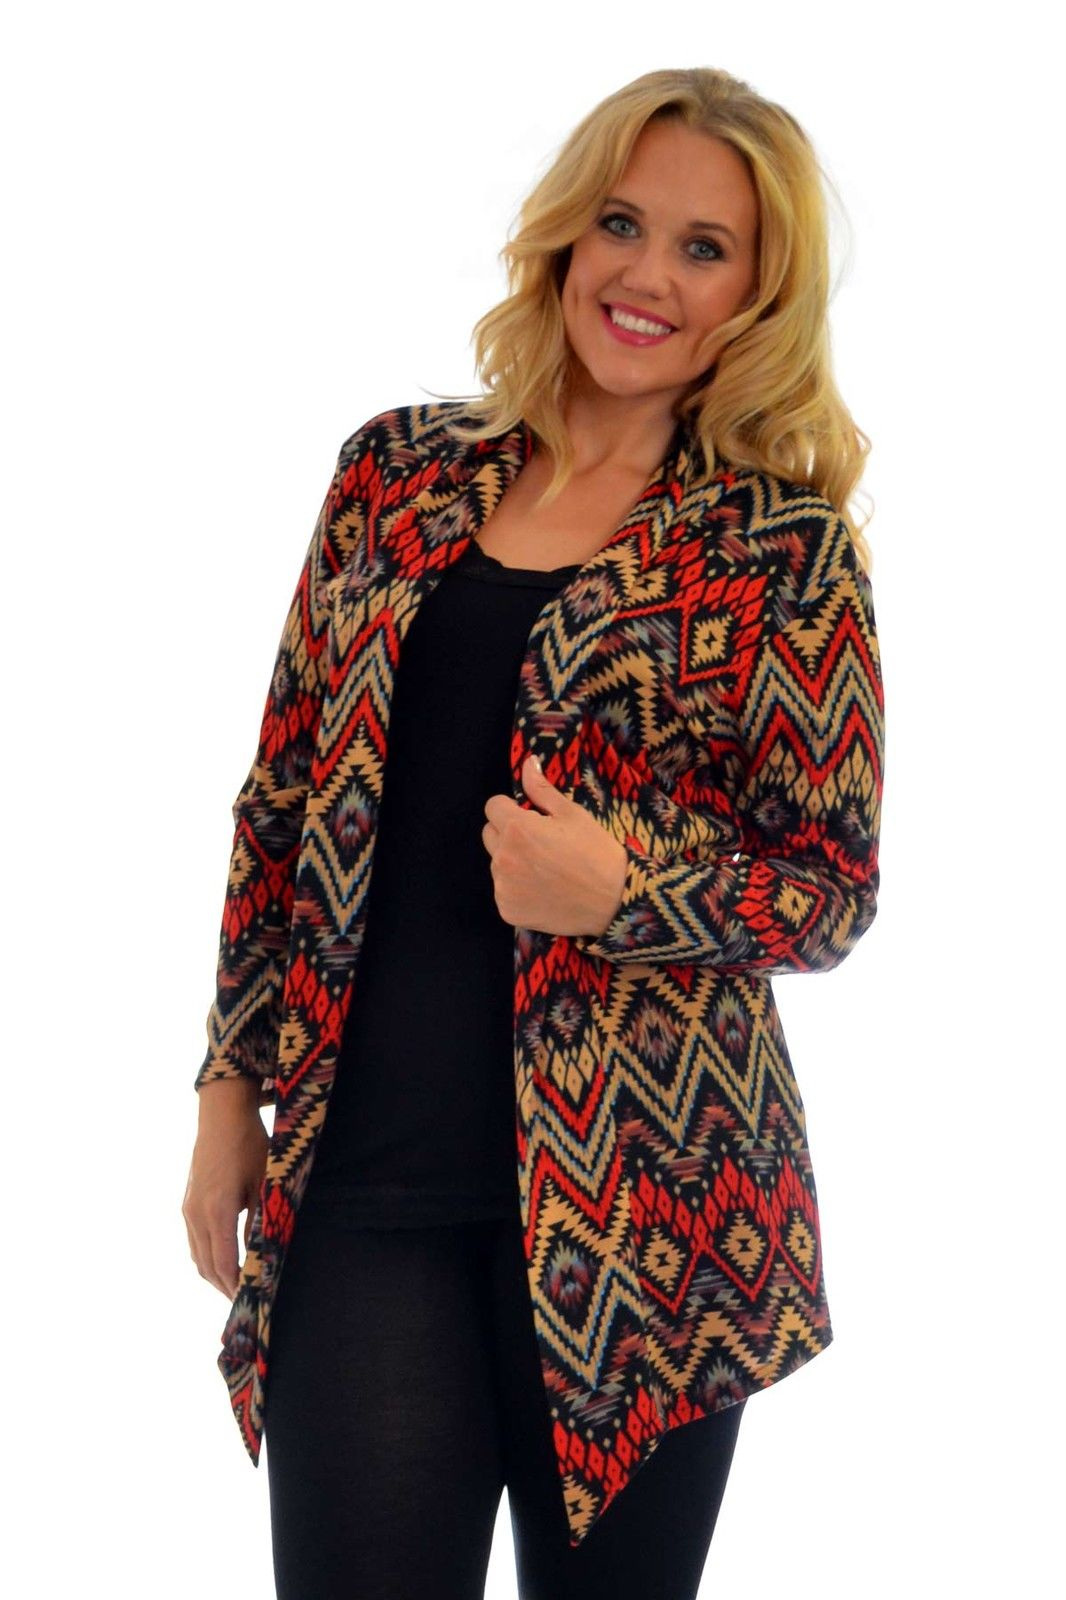 Kimonos & Vests. Pair a women's kimono cardigan from Cavender's with your favorite blue jeans or leggings for a chic, feminine look. Shop styles from Origami, Ariat, Judith March, and more for a pretty Aztec cardigan, kimono top, or fringe vest in suede that transition easily from work to play.